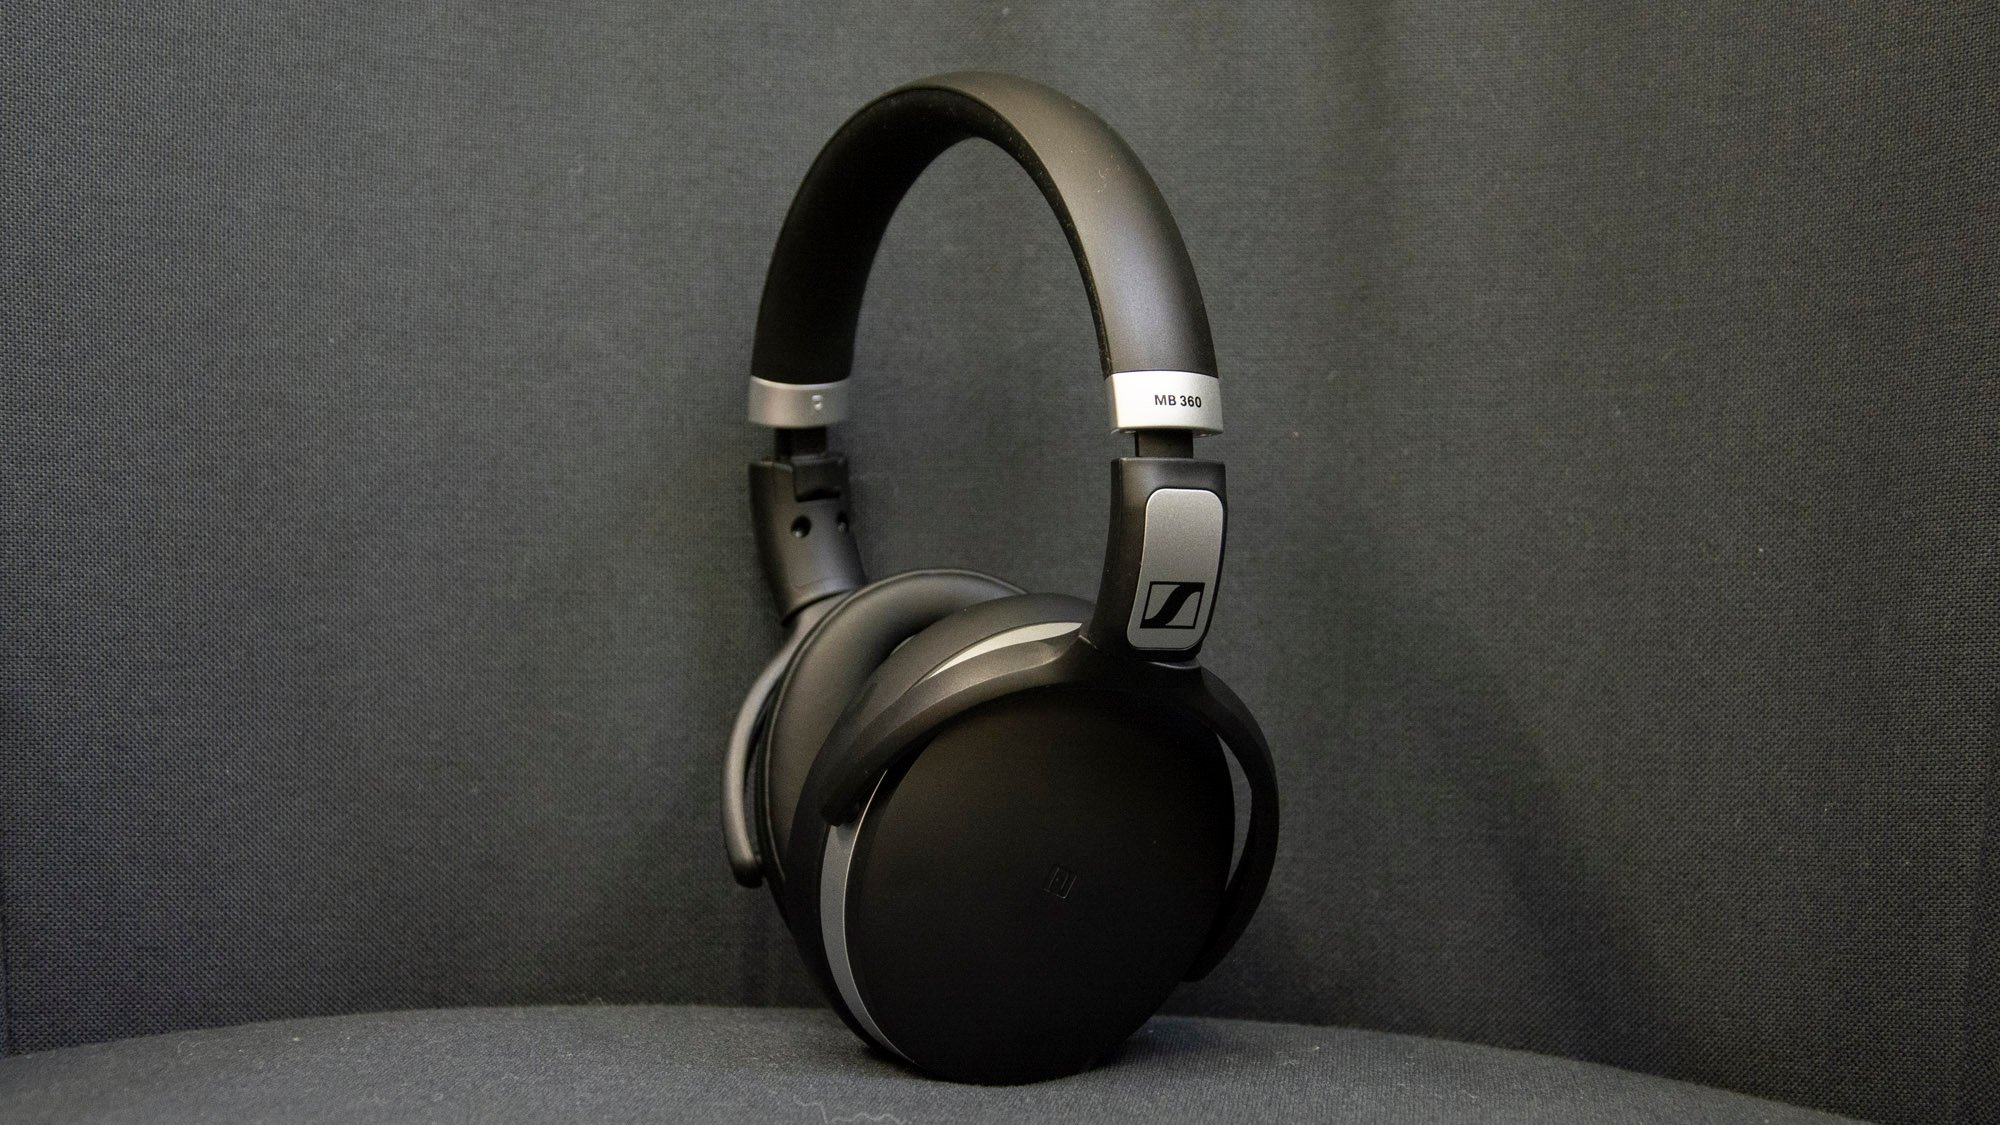 Sennheiser MB 360 UC review: Business focussed but flawed   Expert